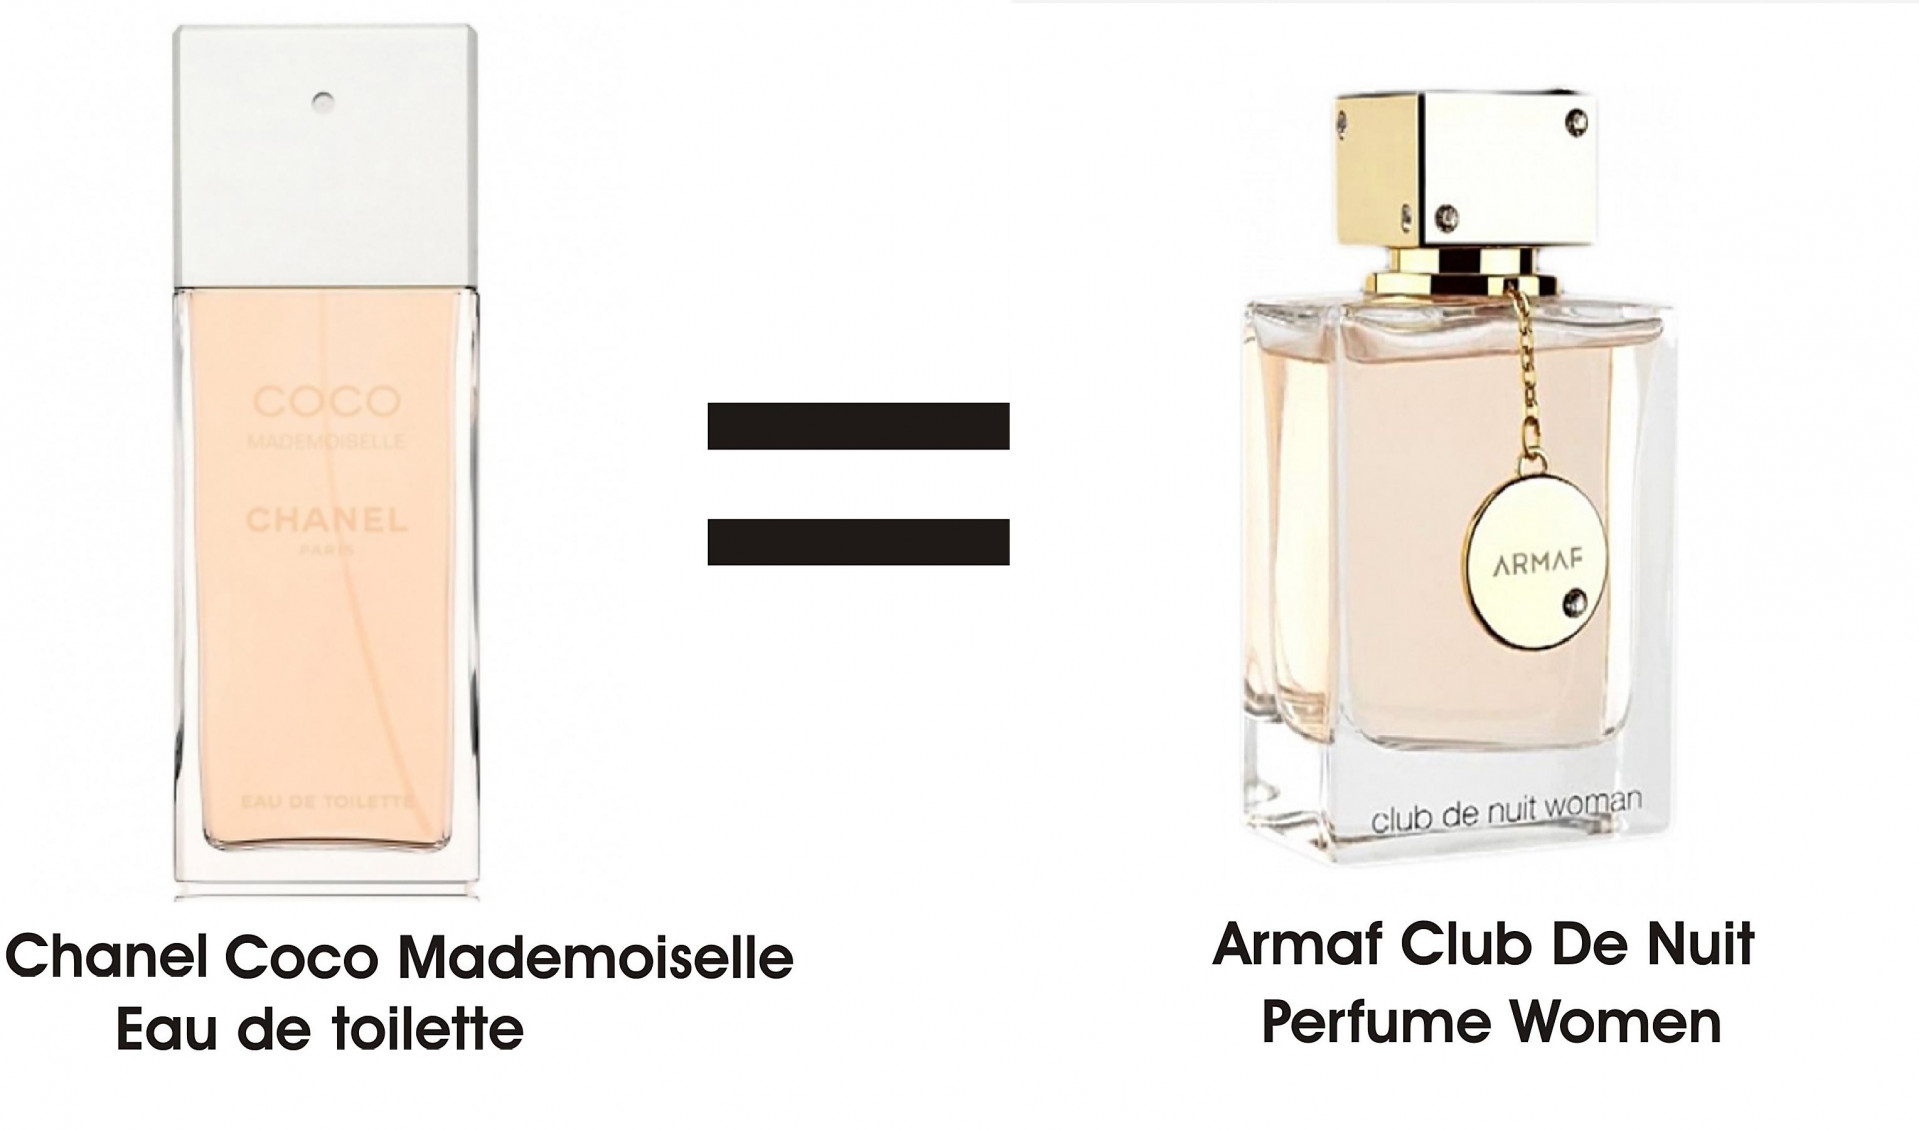 Armaf Club de Nuit Women is Chanel Coco Mademoiselle clone